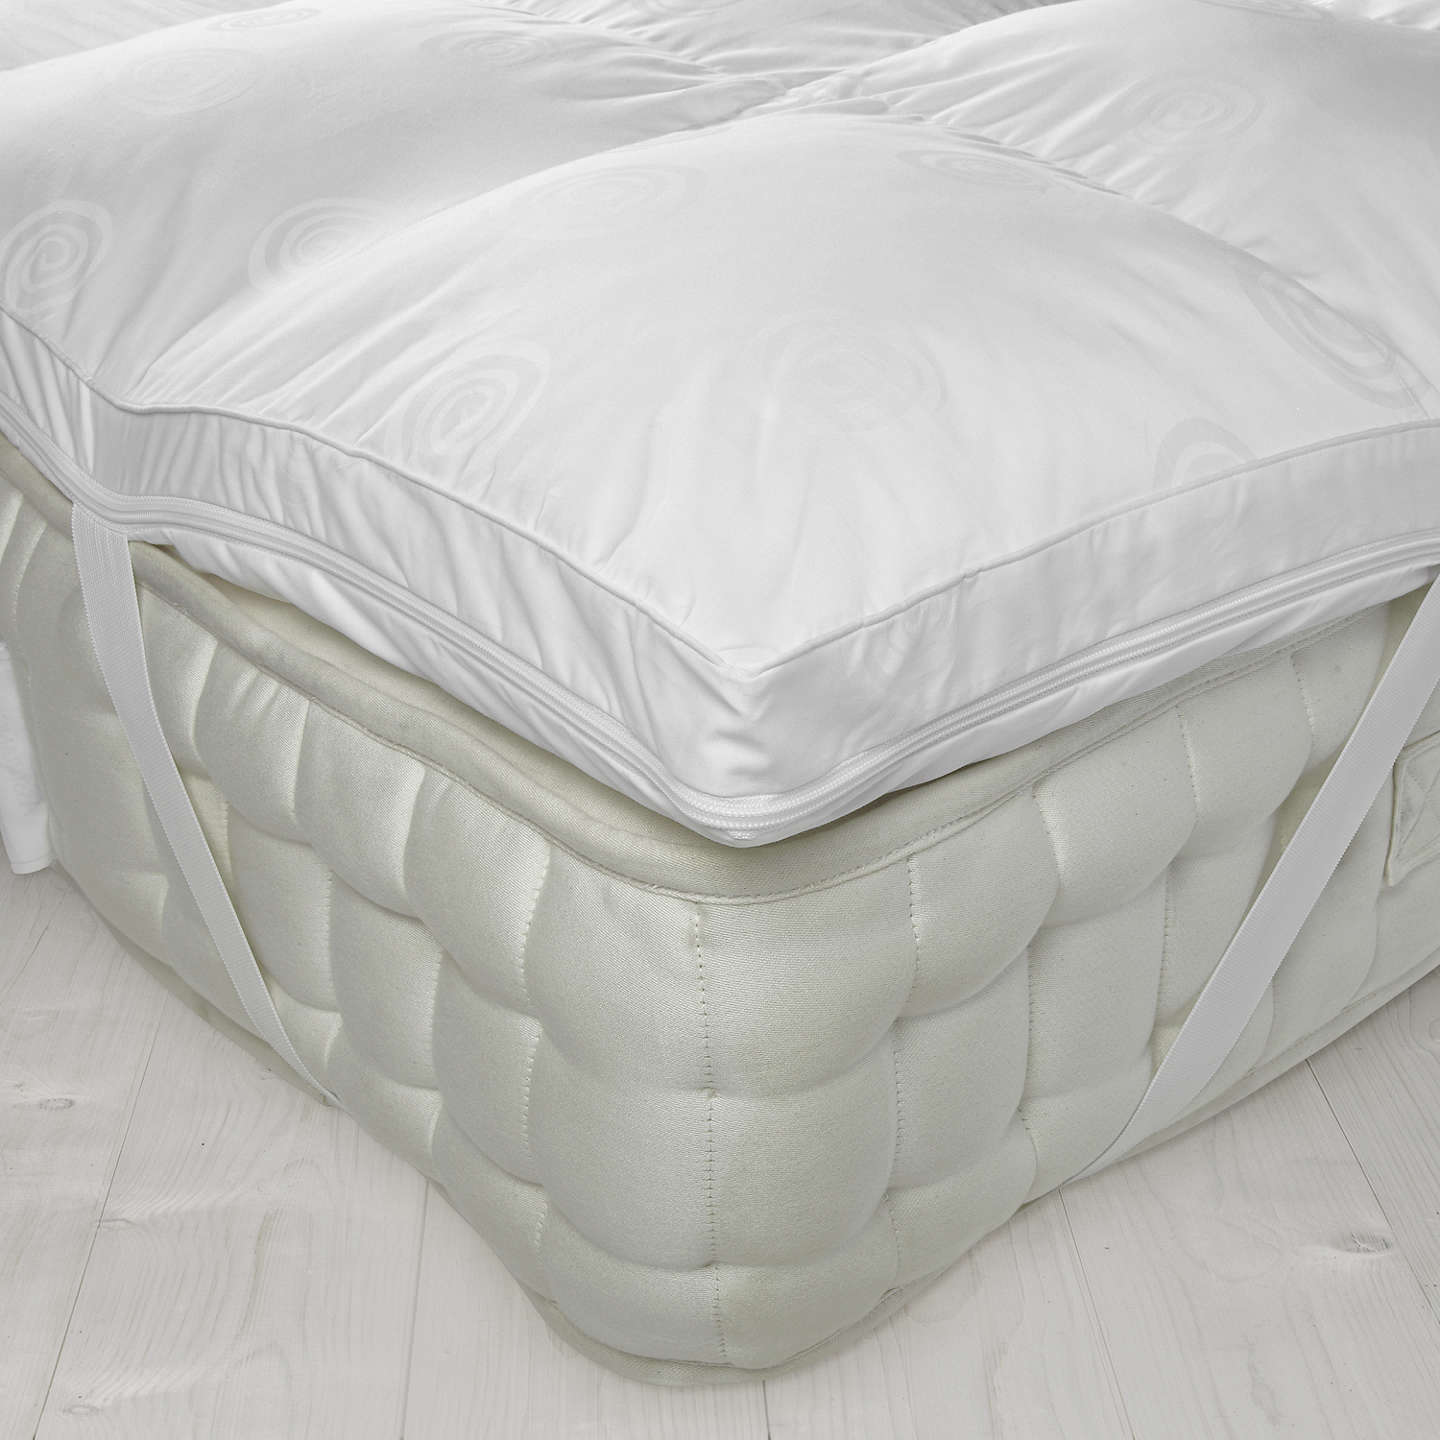 gel toppers foam memory wayfair pdp topper mattress reviews bed ca bath lucid